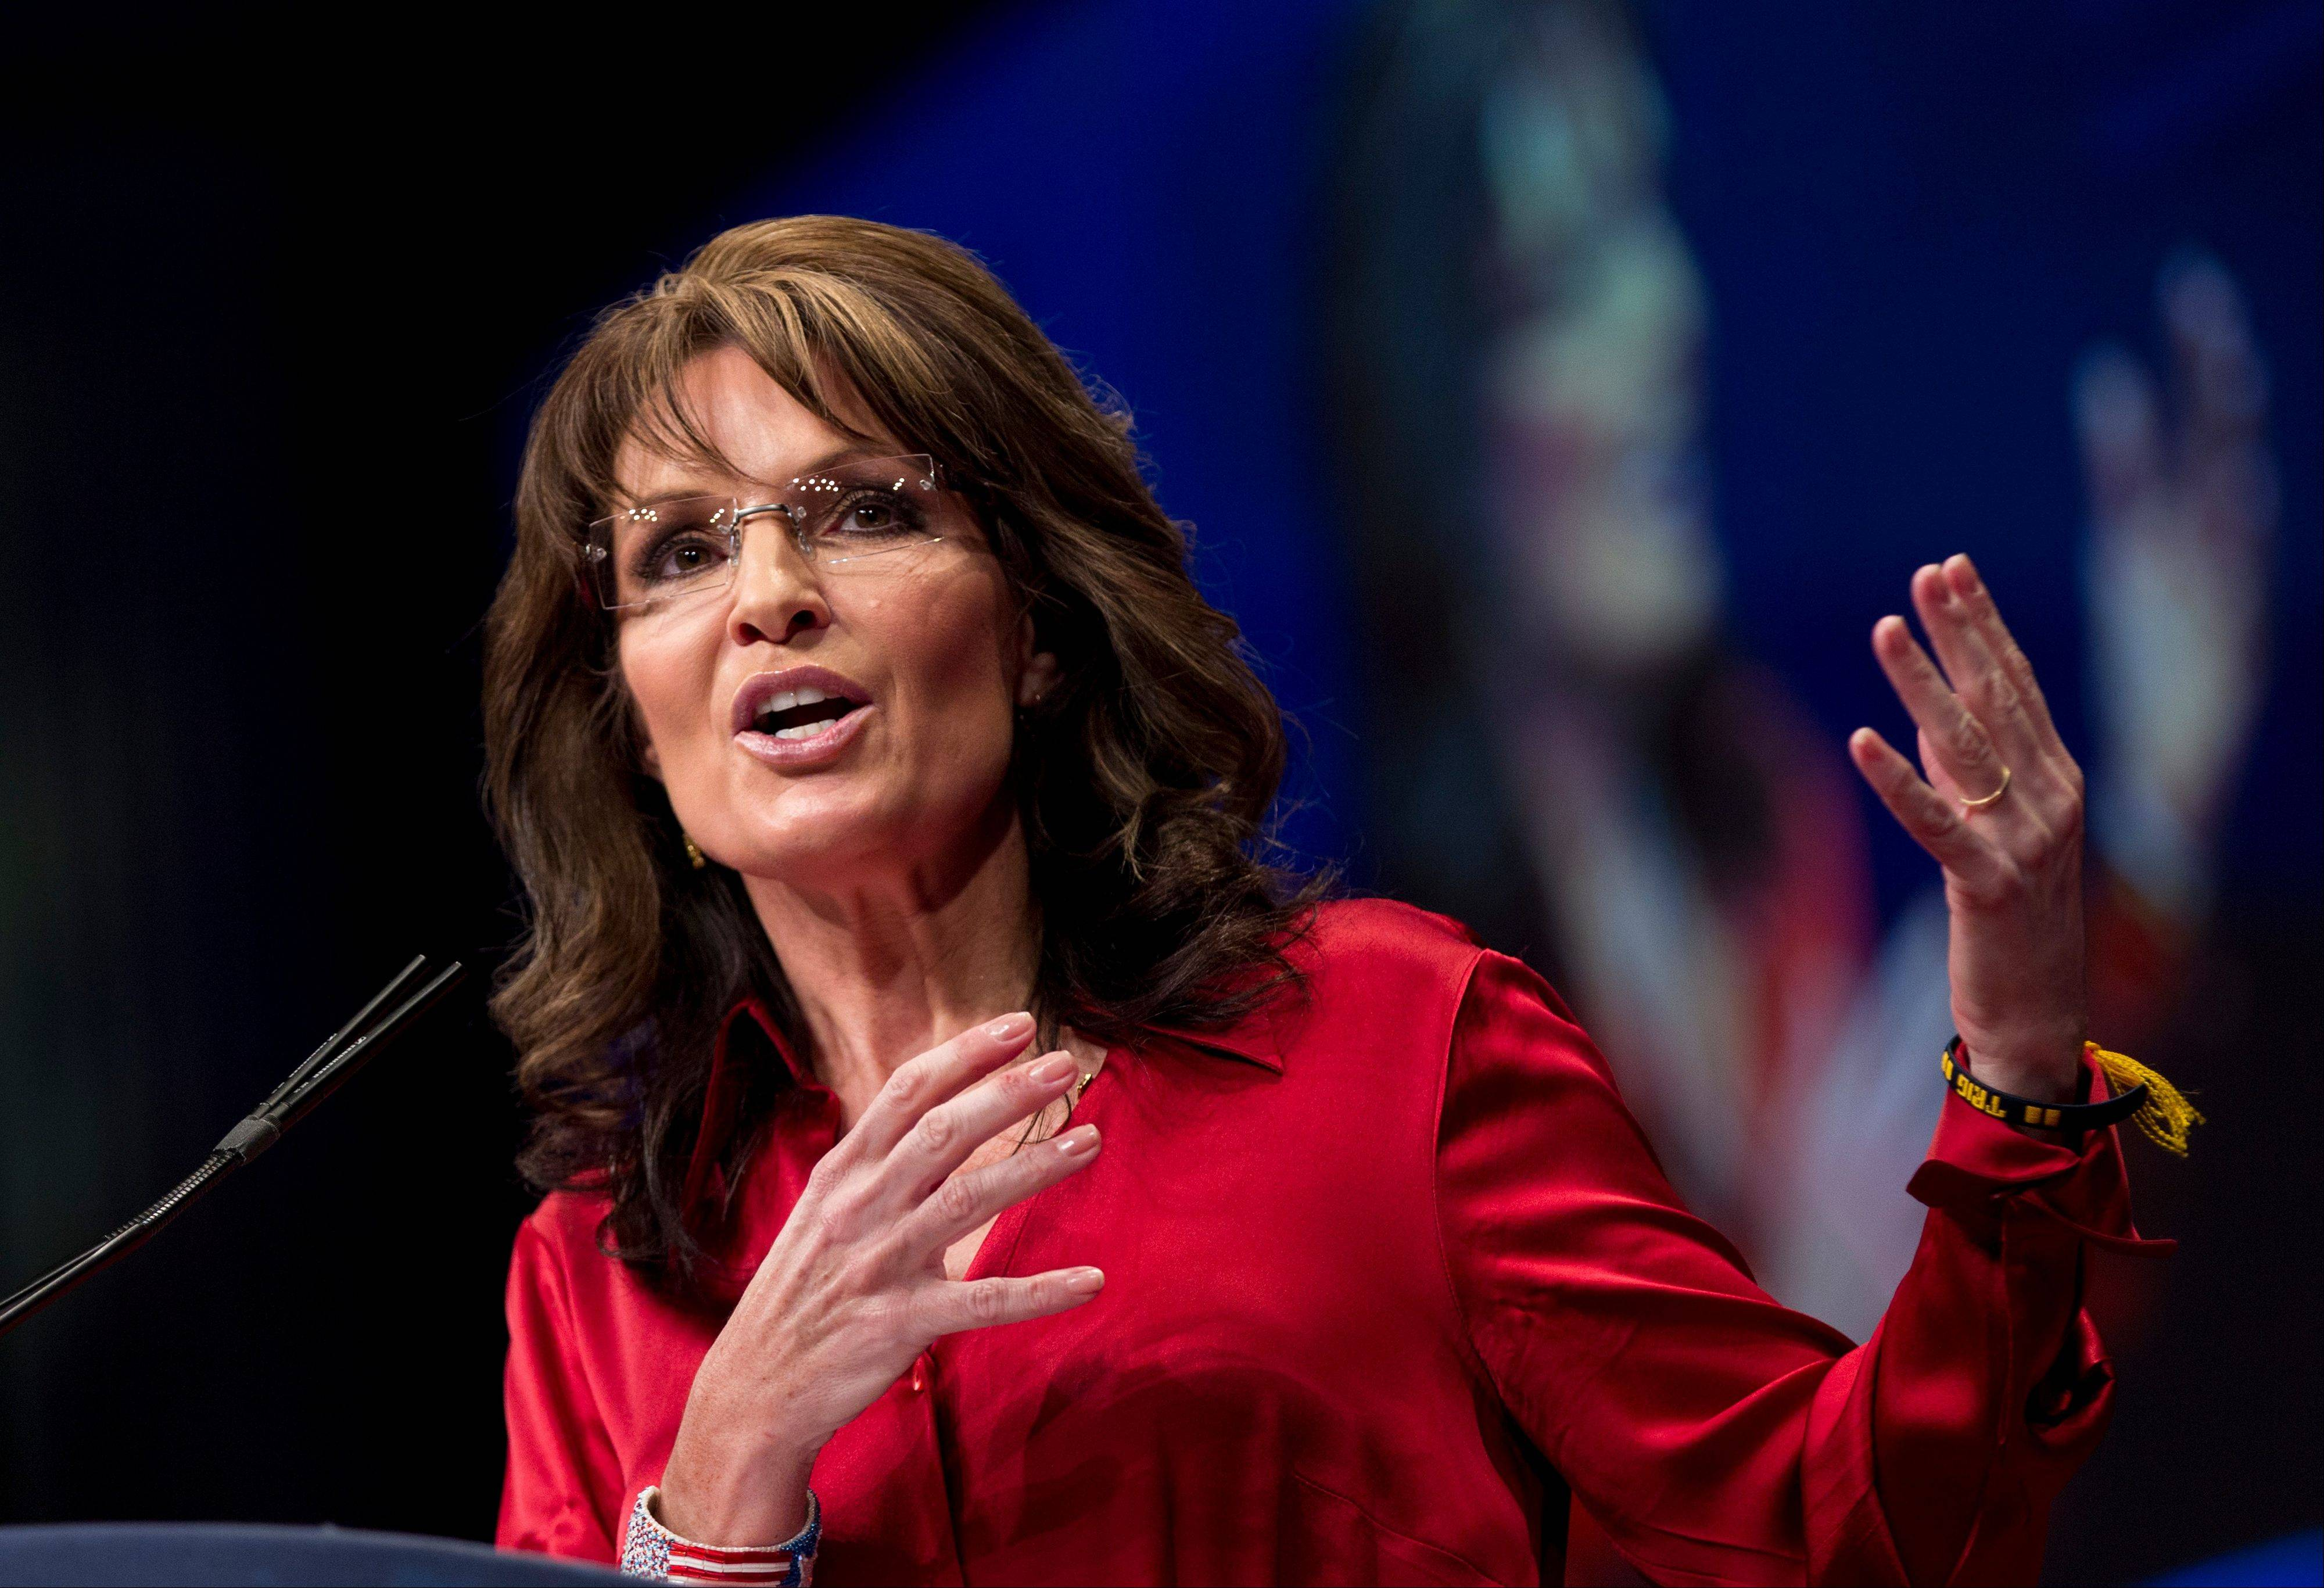 Sarah Palin is rejoining Fox News Channel, the network said Thursday.